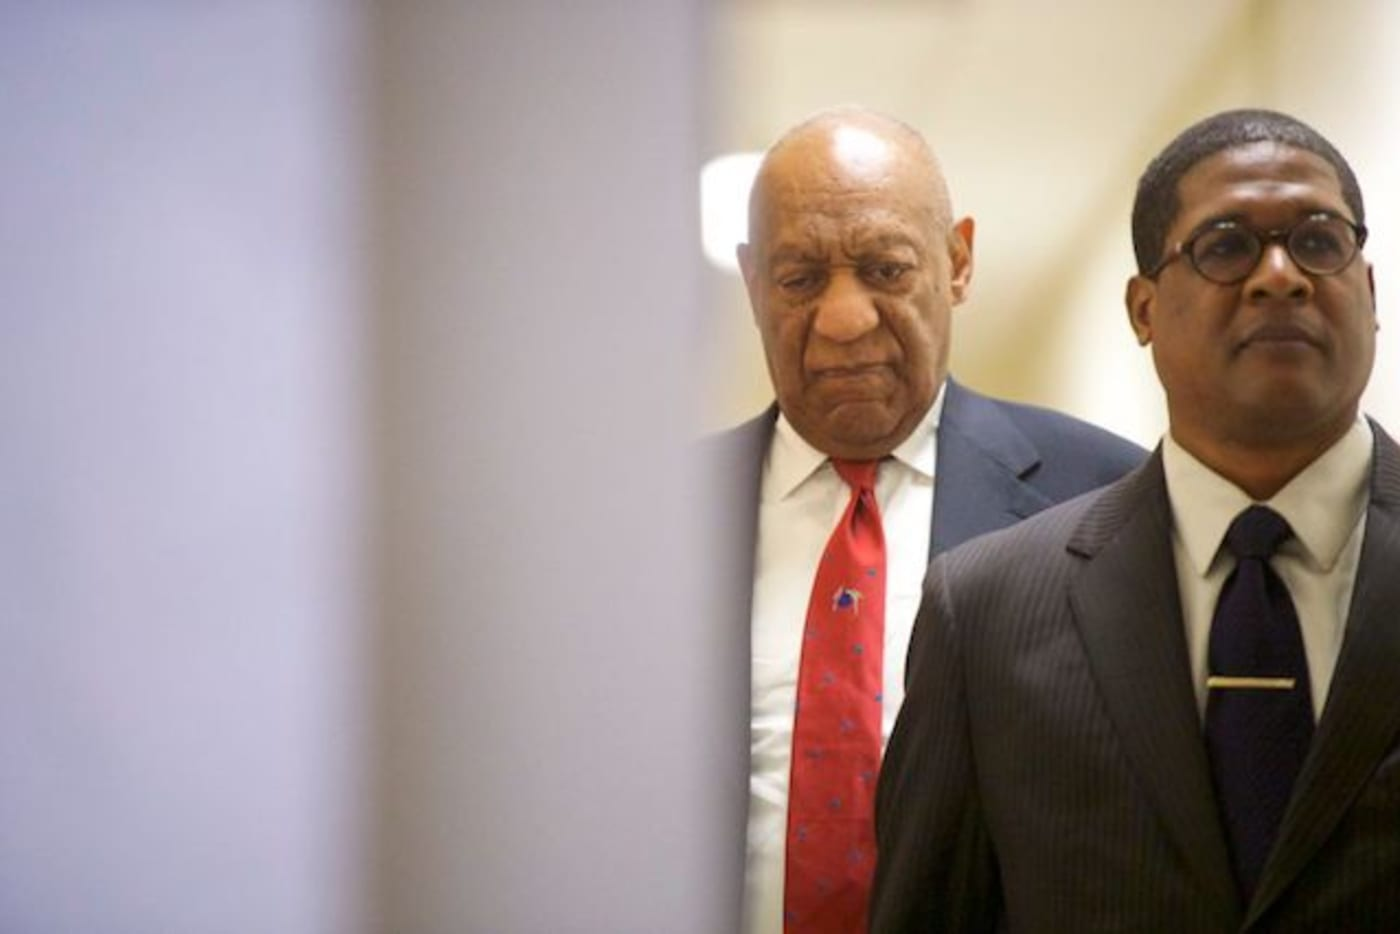 This is a picture of Bill Cosby.